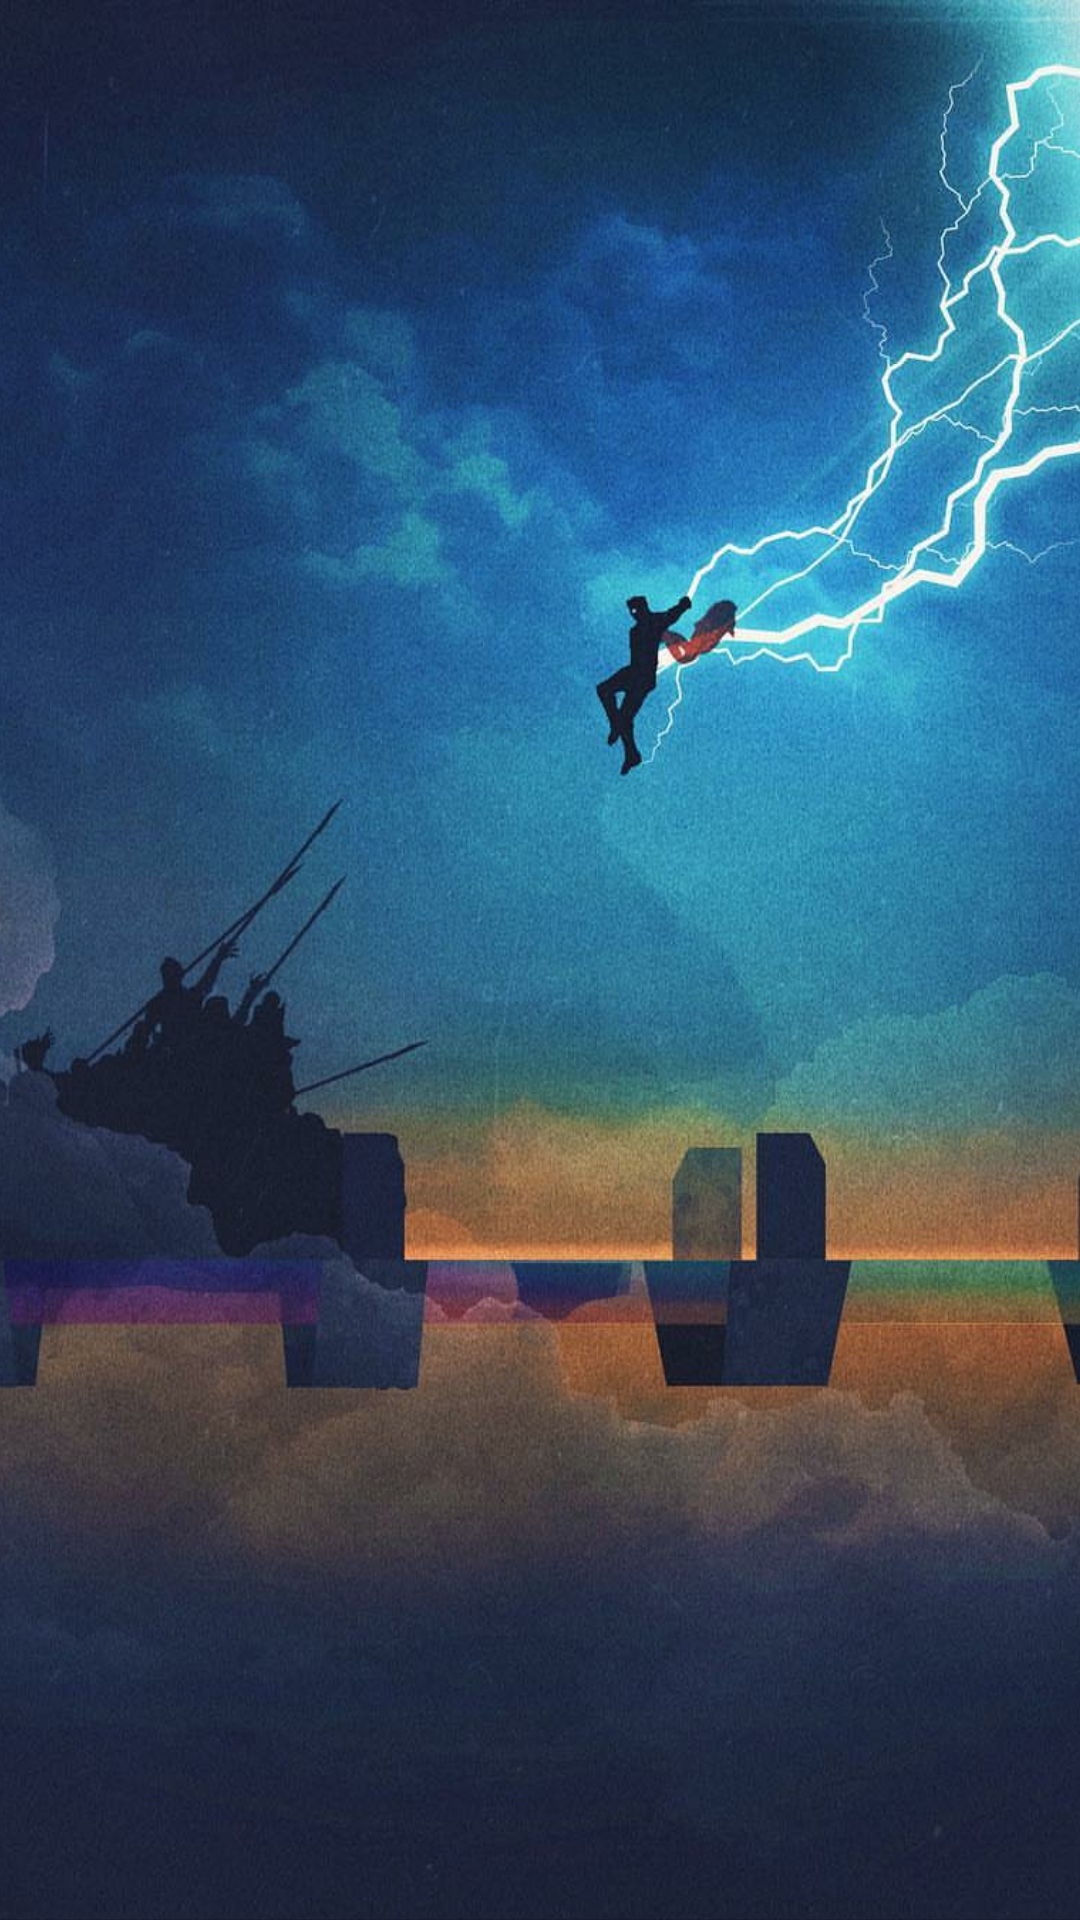 Iphone 6 Wallpaper Love Quotes Thor Stormbreaker Attack Iphone Wallpaper